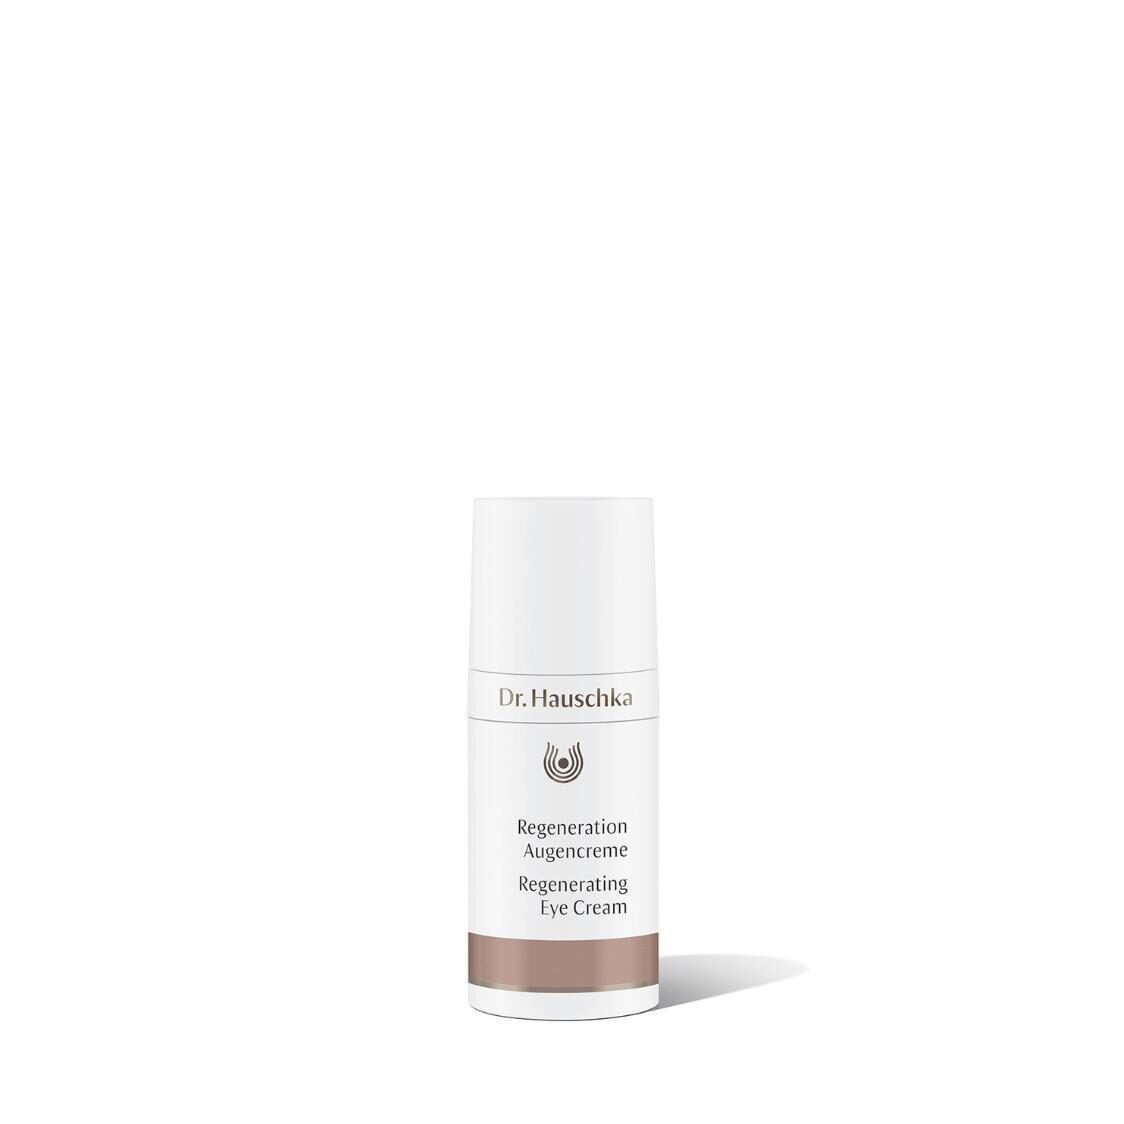 DrHauschka Regenerating Eye Cream 15ml